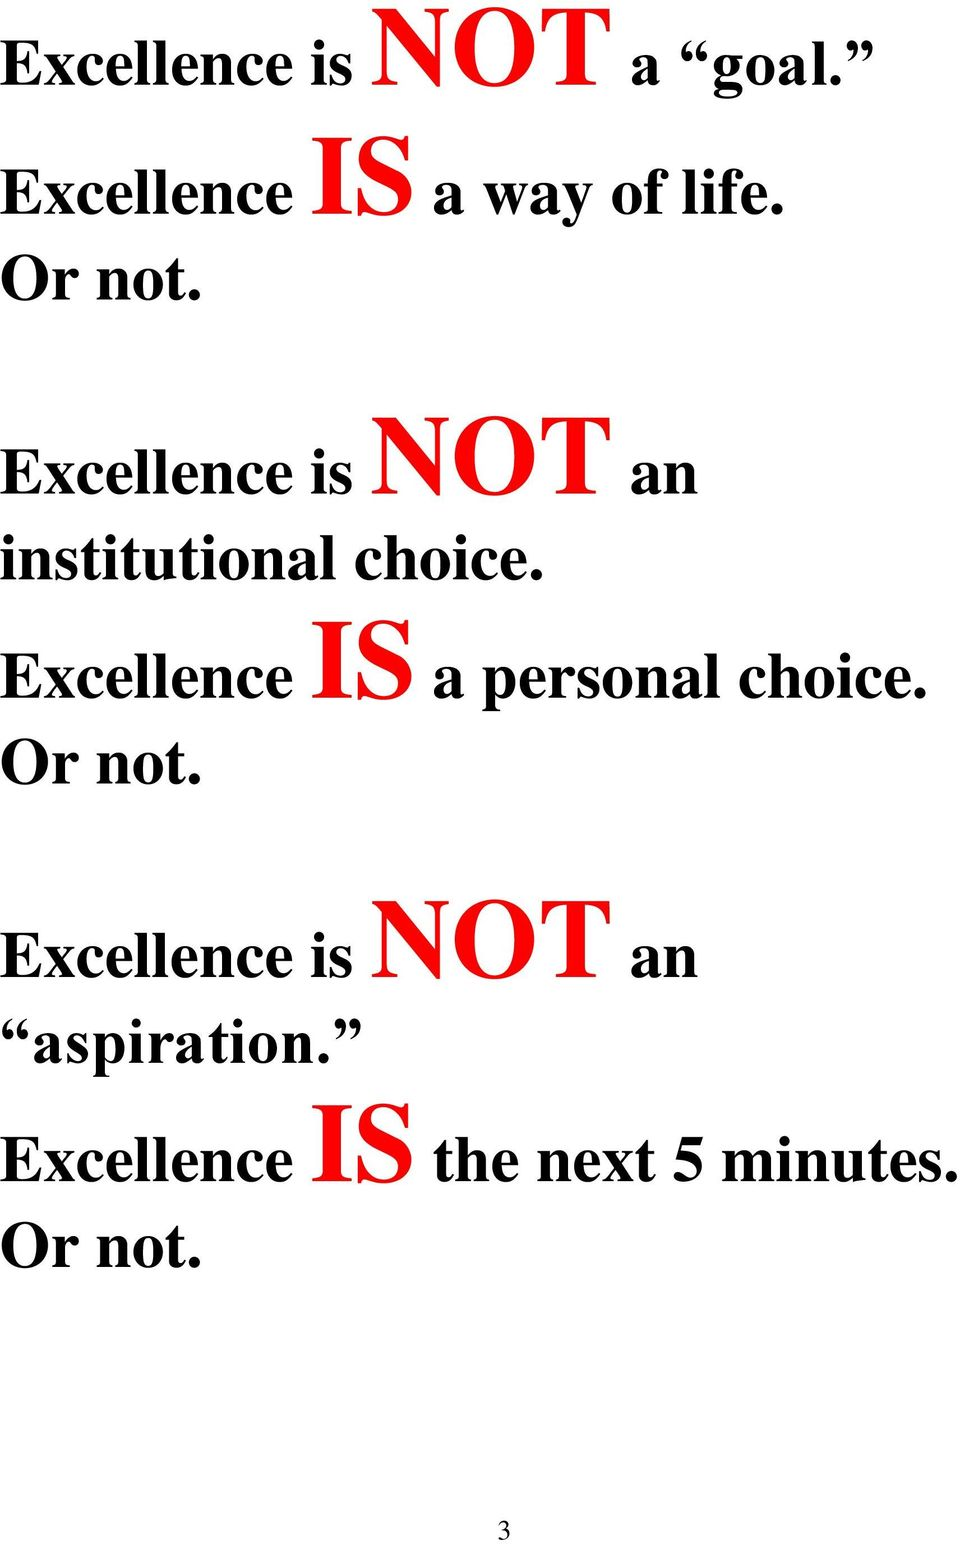 Excellence is NOT an institutional choice.